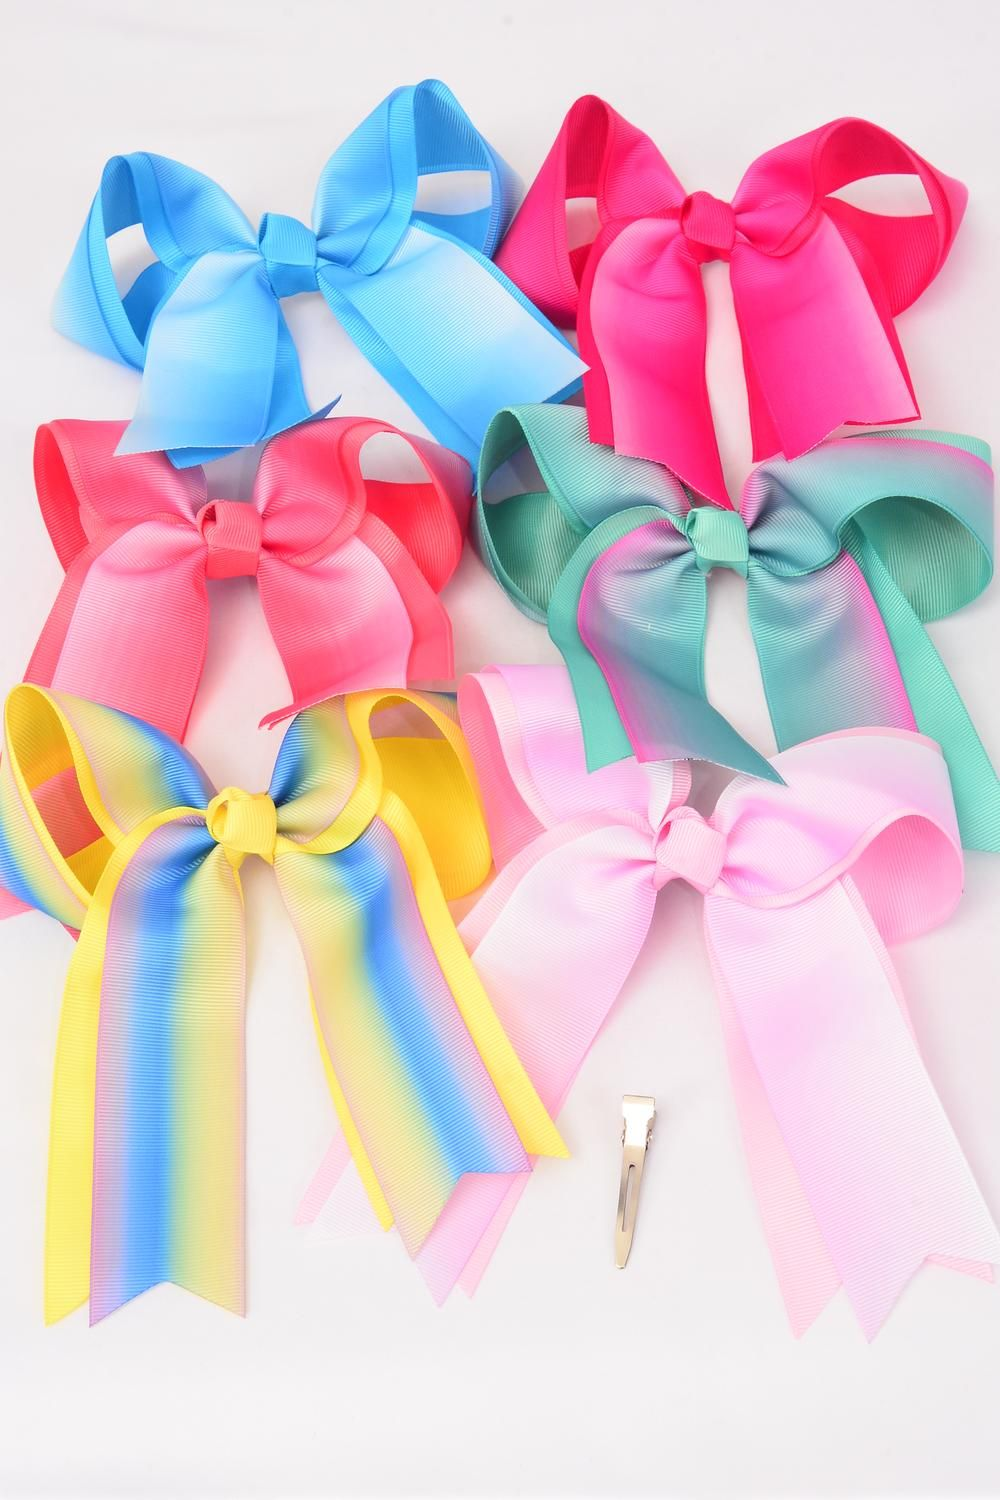 "Hair Bow Jumbo Long Tail Tiedye Grosgrain Bow-tie Pastel/DZ **Pastel** Size-7""x 6"",Alligator Clip,2 Fuchsia,2 Baby Pink,2 Blue,2 Yellow,2 Peach,1 Lavender,1 Mint Green,7 Color Asst,Clear Strip & UPC Code"